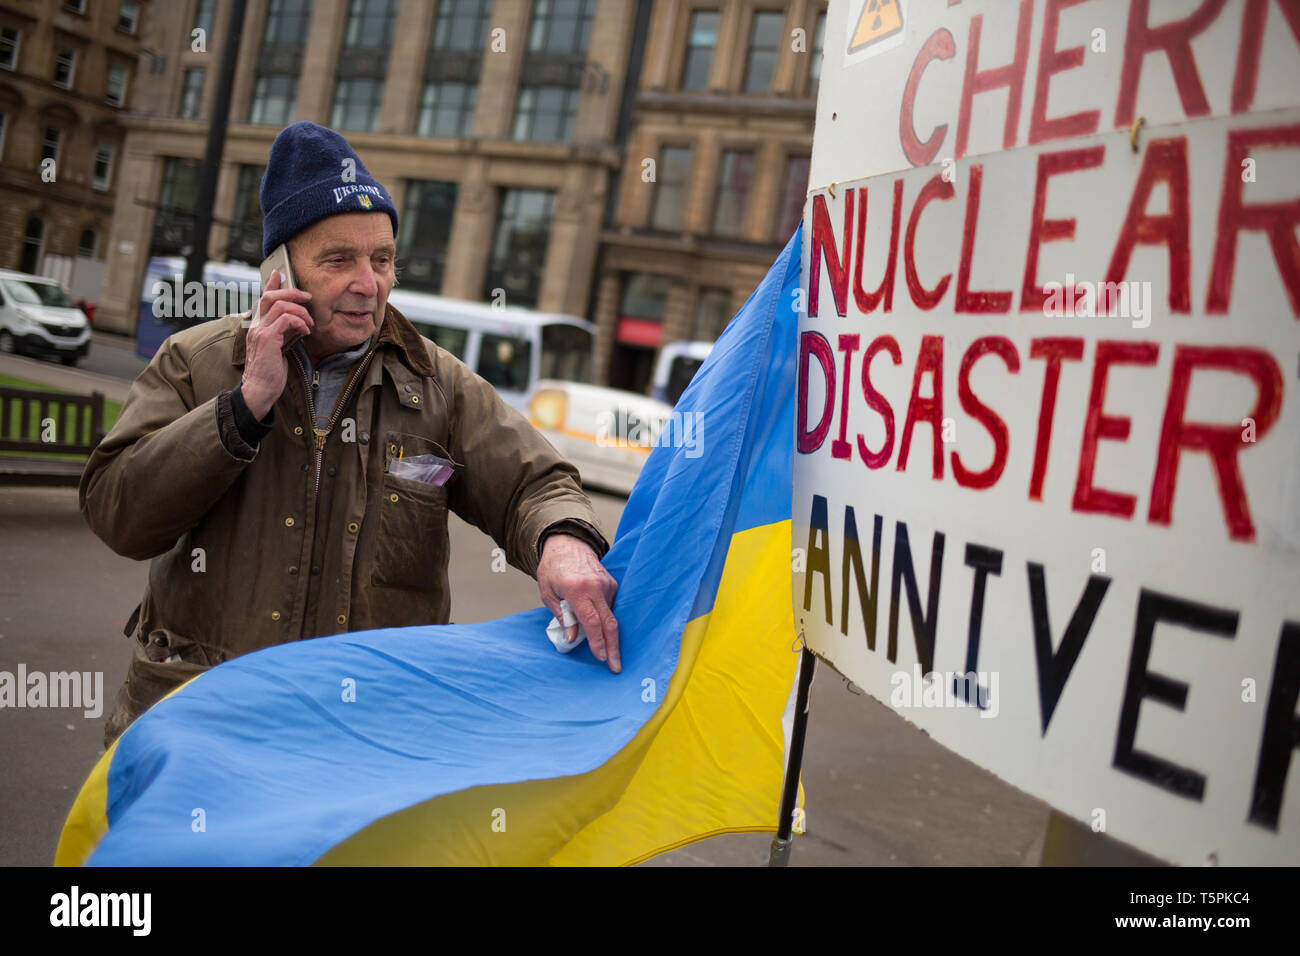 Glasgow, Scotland, 26th April 2019. 78-years old Jim Gillies stands in George Square with his placard remembering the 1986 Chernobyl nuclear disaster in the Ukraine. Today marks the 33rd anniversary of the disaster and Jim Gillies has marked the disaster day, by standing with his placard in the Square ever year since, as well as donating more than £20,000 GBP to a hospital in Ukraine, a country he has now visited approximately 20 times. Credit: jeremy sutton-hibbert/Alamy Live News - Stock Image